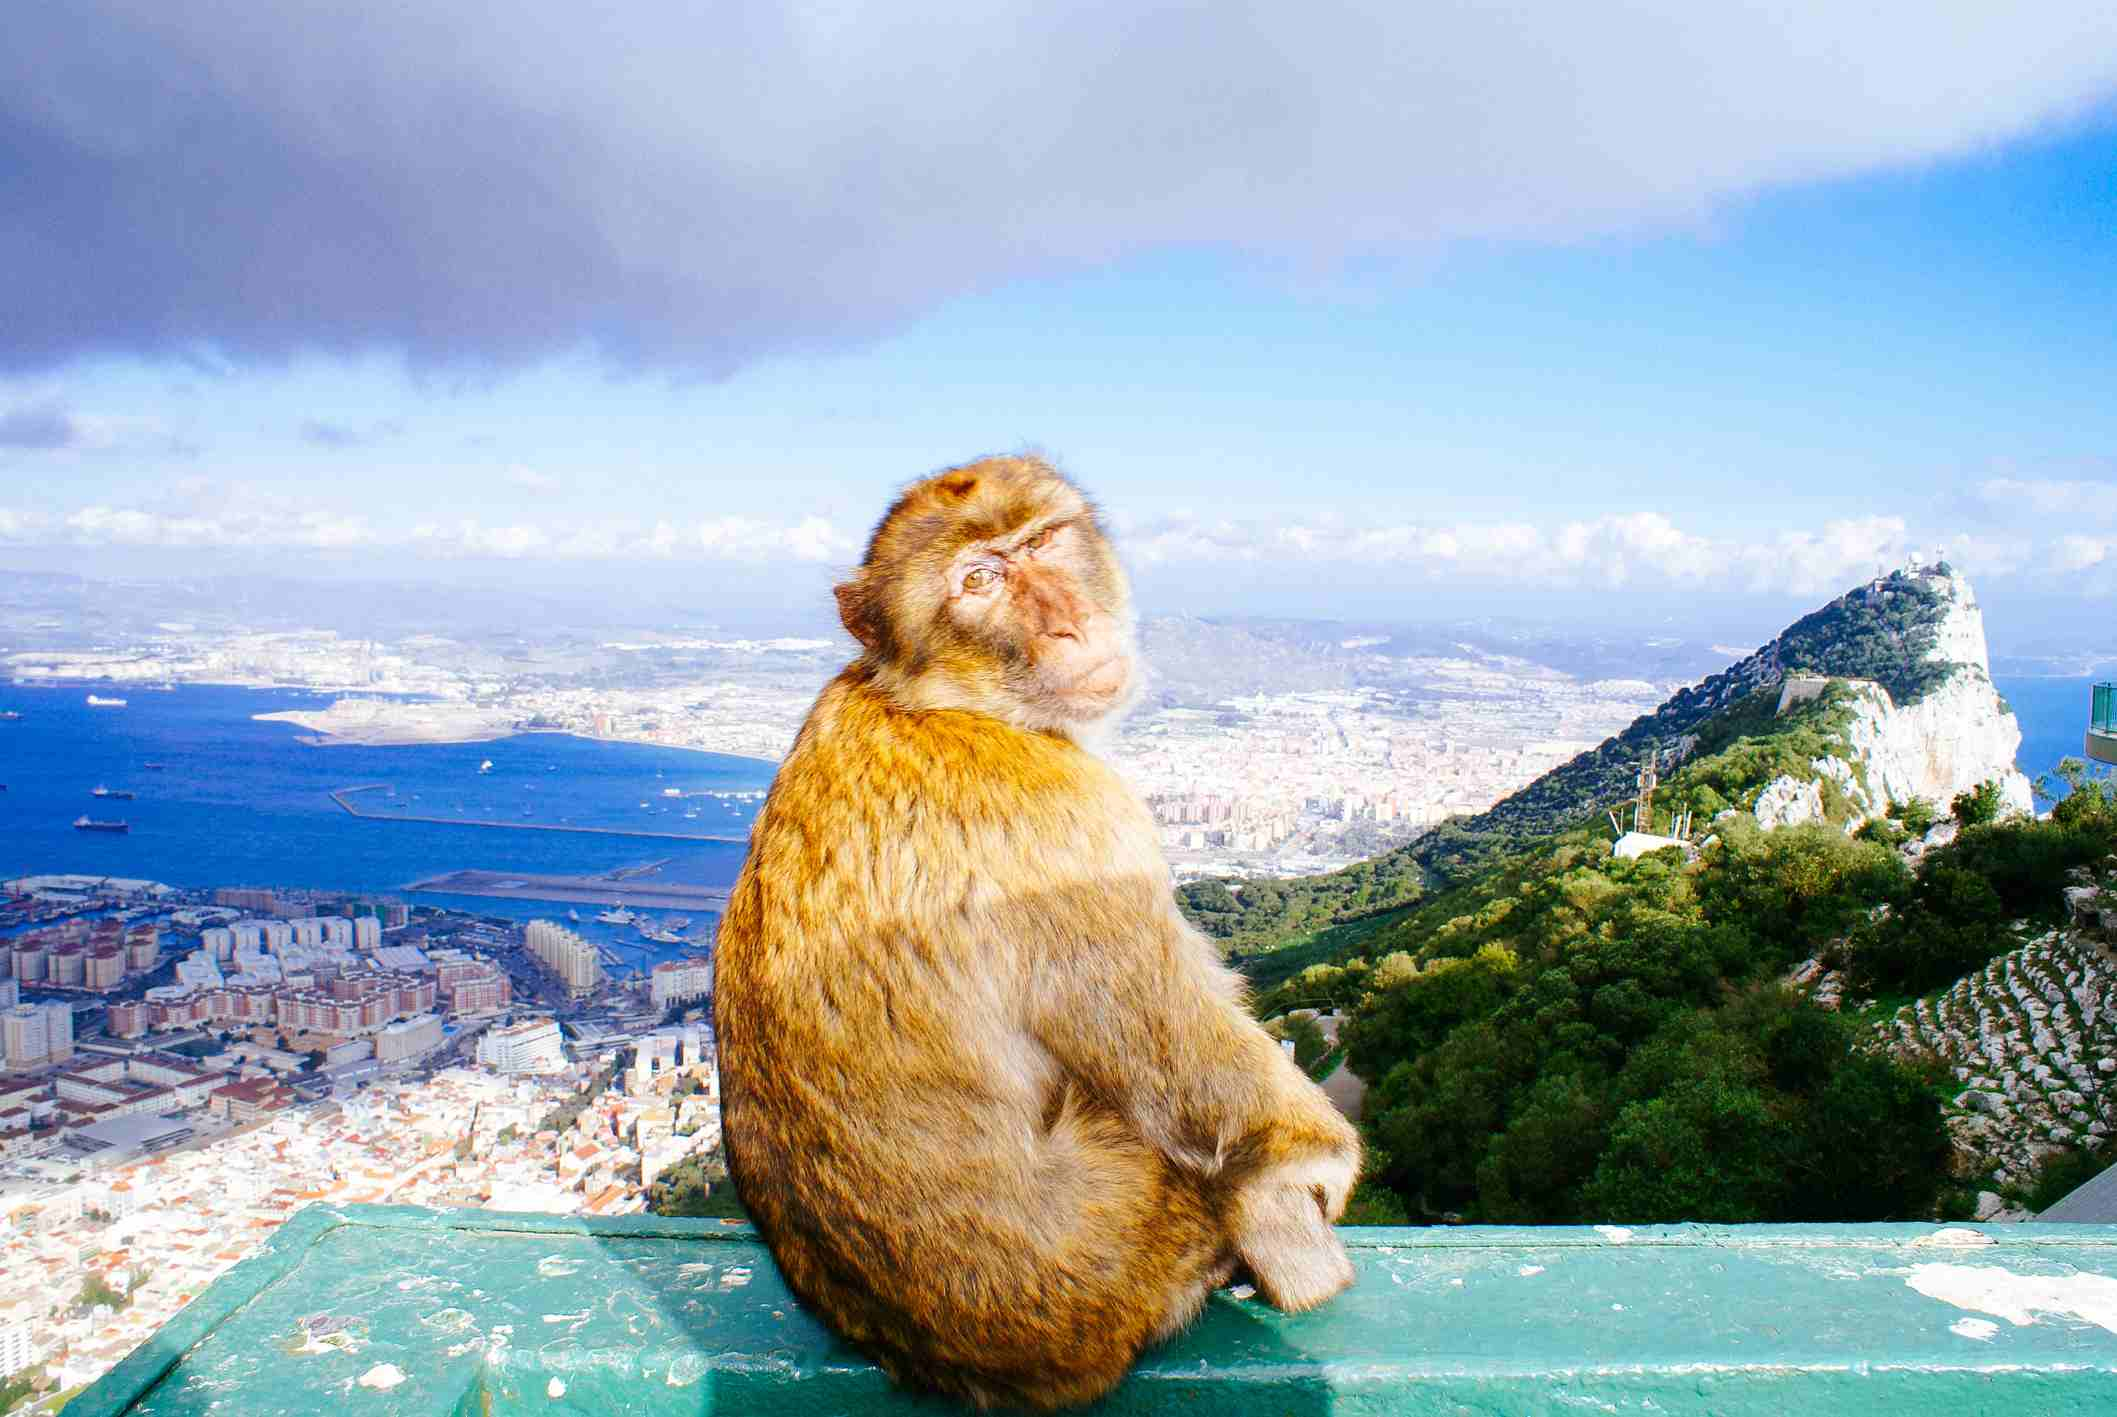 Monkey Sitting On Retaining Wall Against Cloudy Sky At Gibraltar